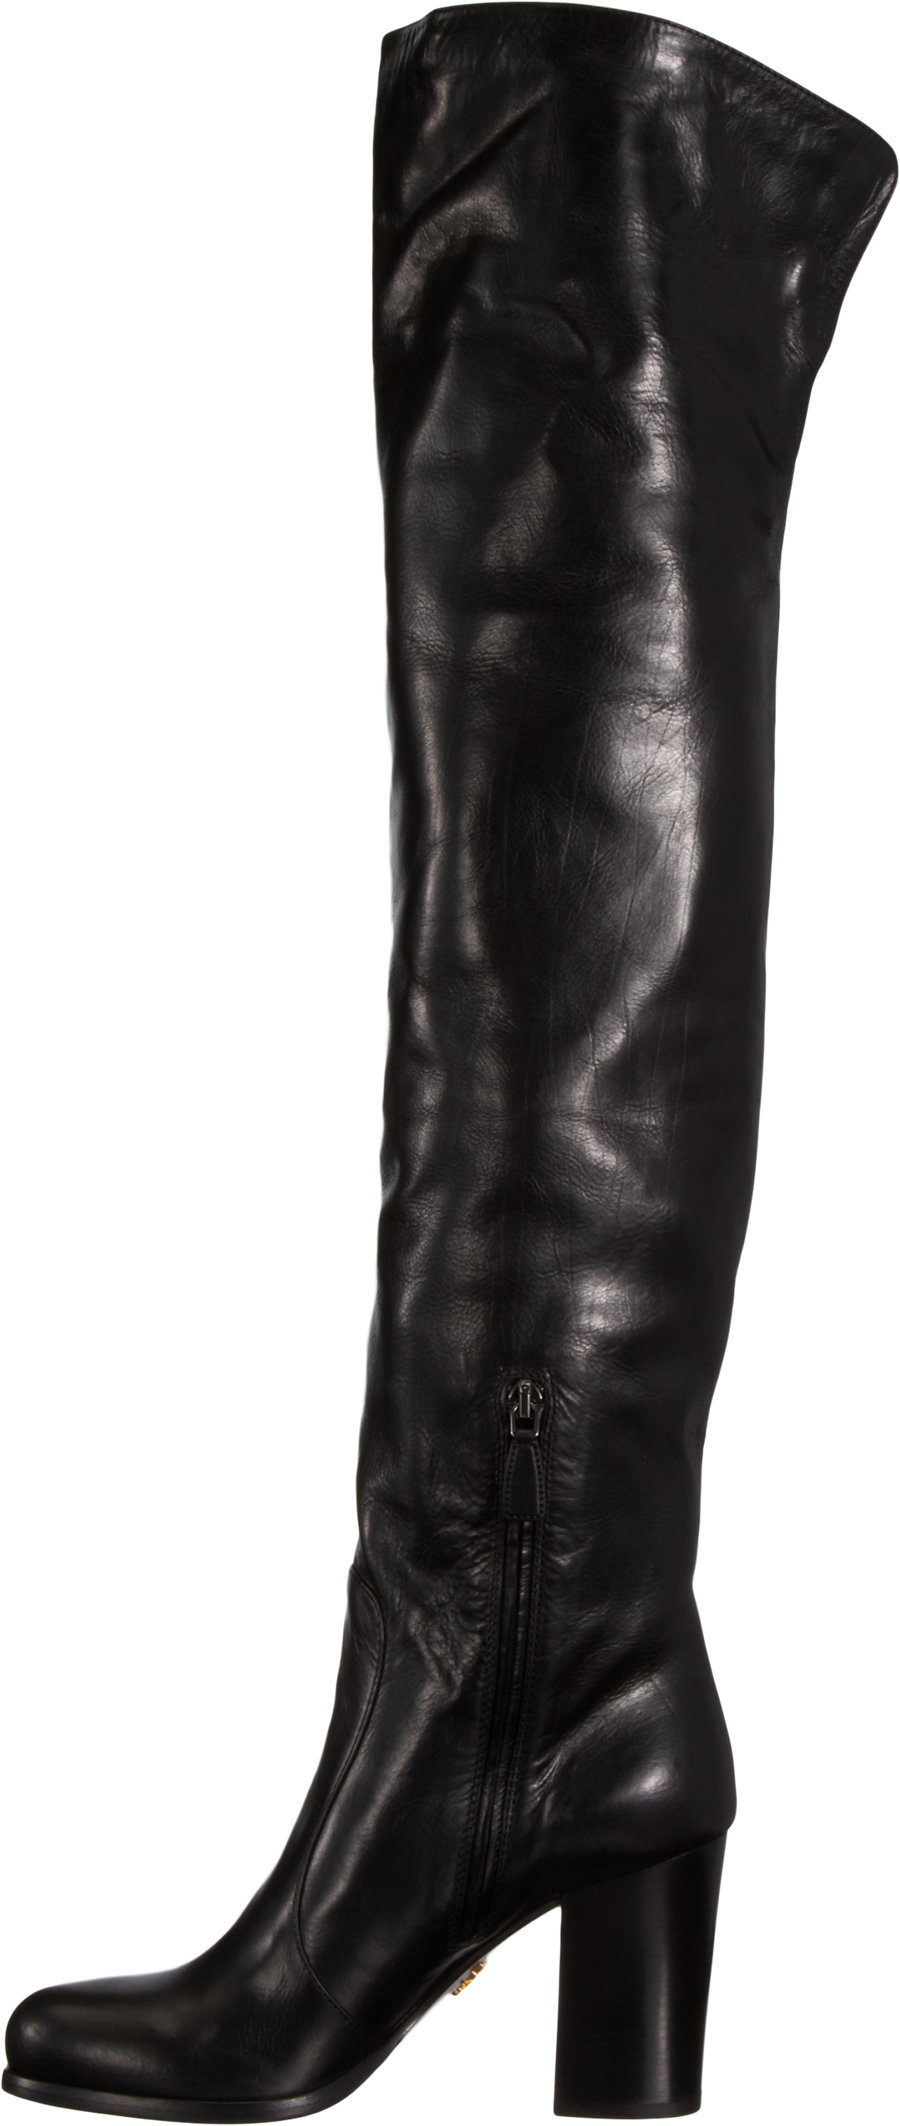 Prada Slouchy Over-The-Knee Boot in Black | Lyst